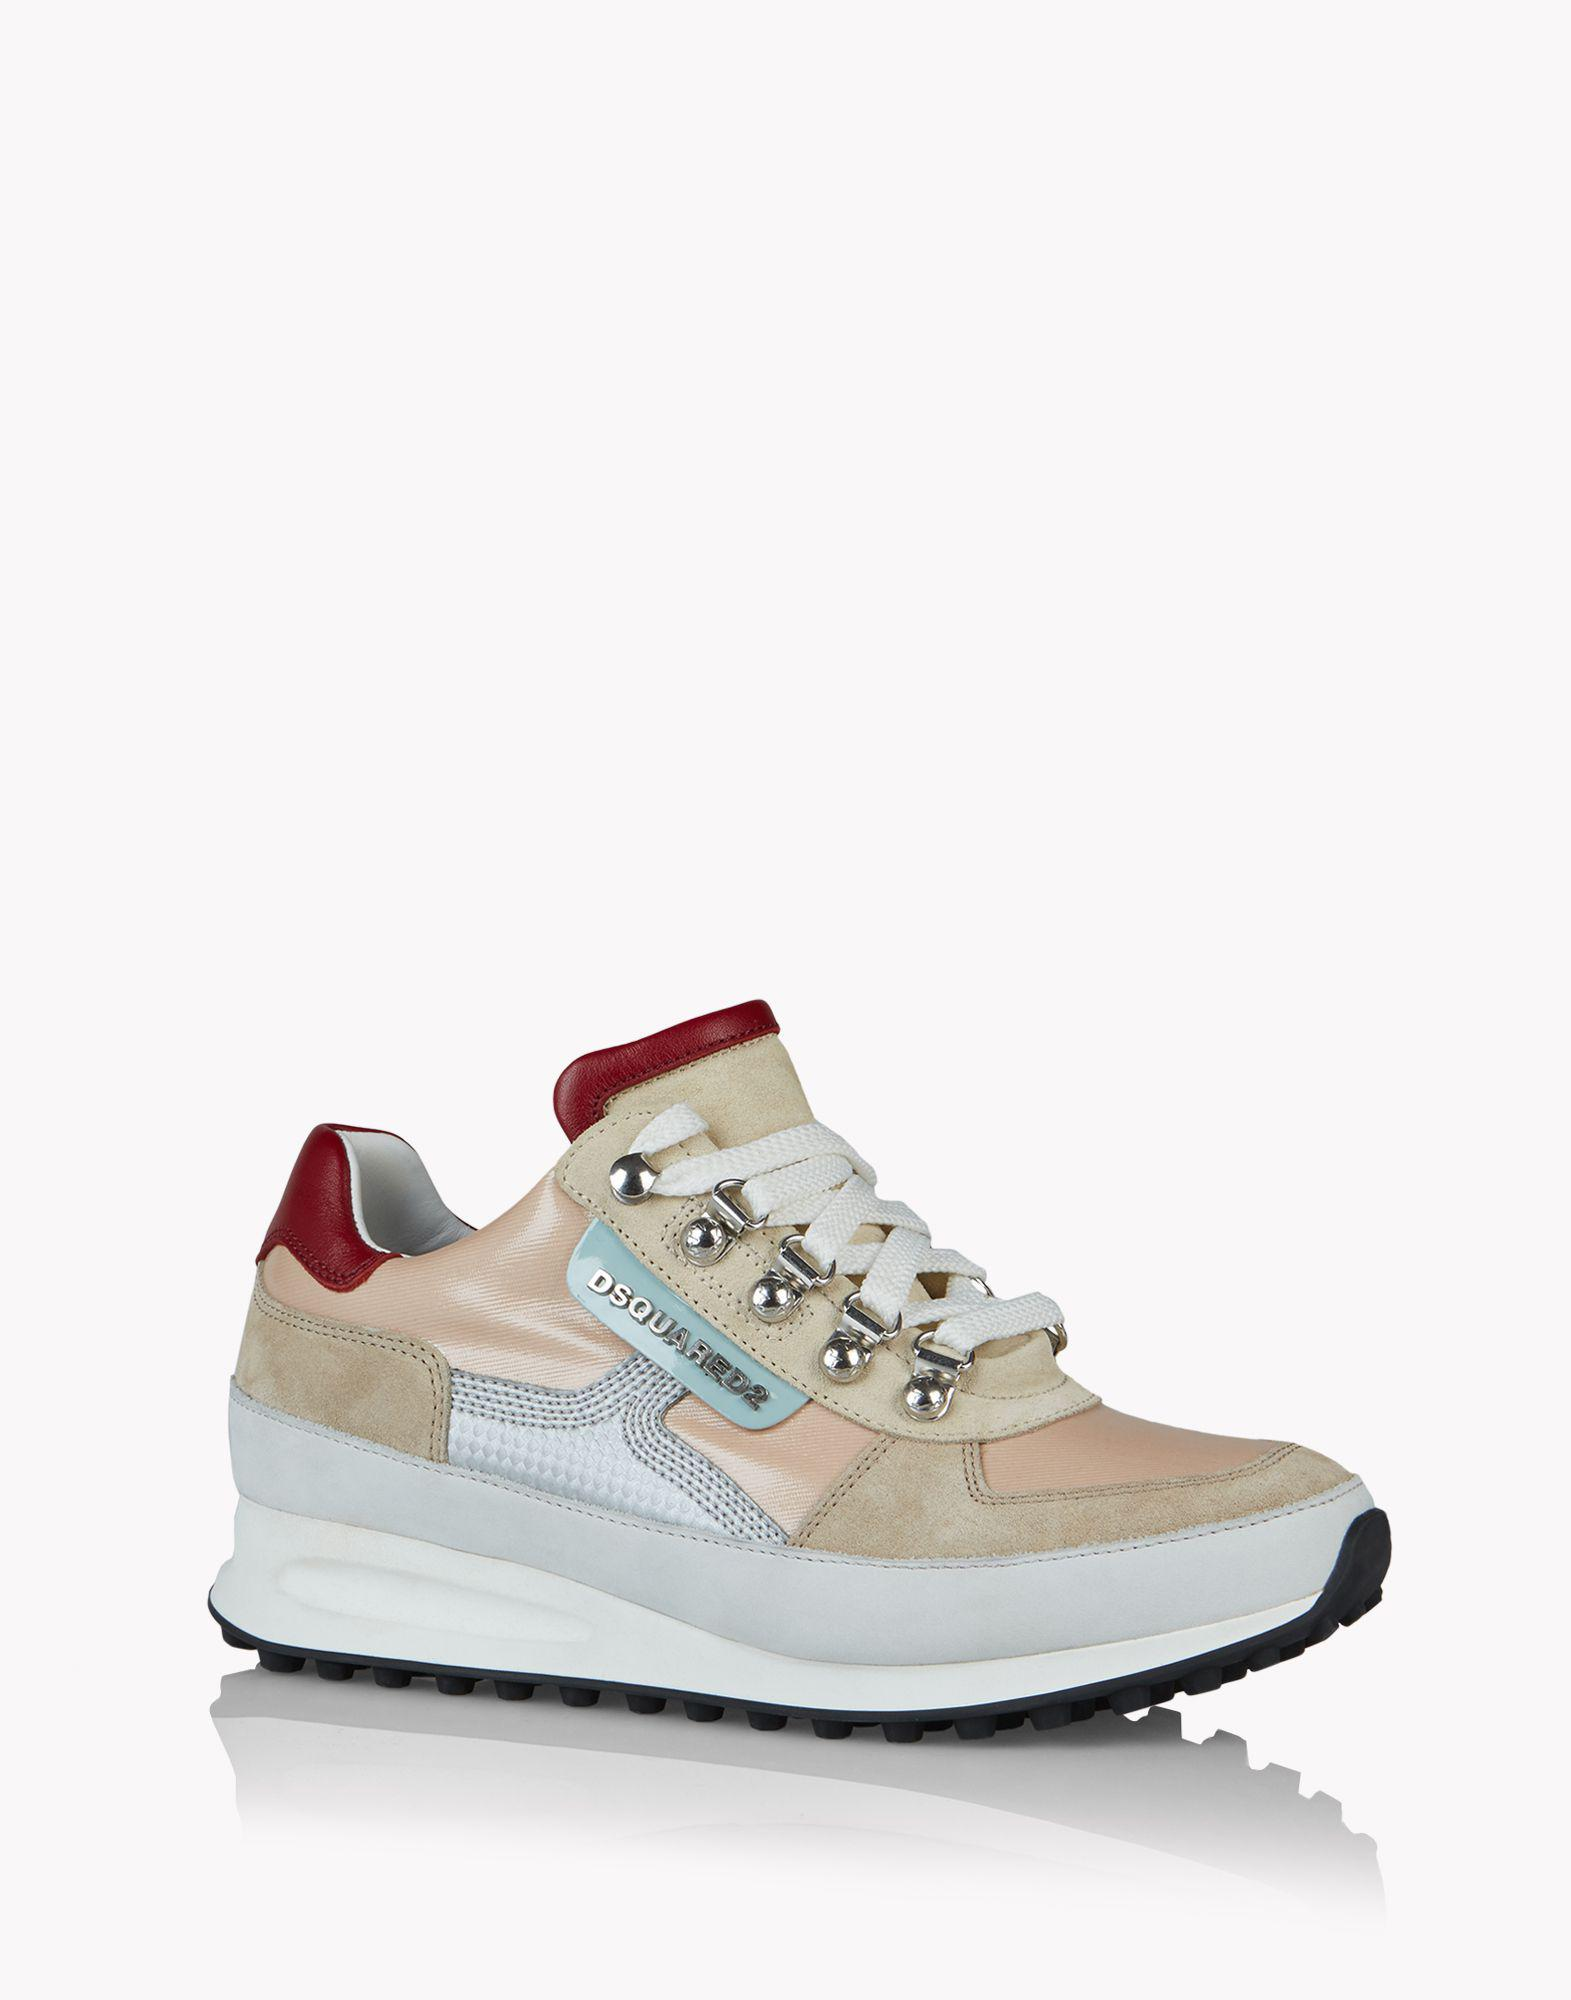 DSquared² Rubber Sneaker in Beige (Natural)